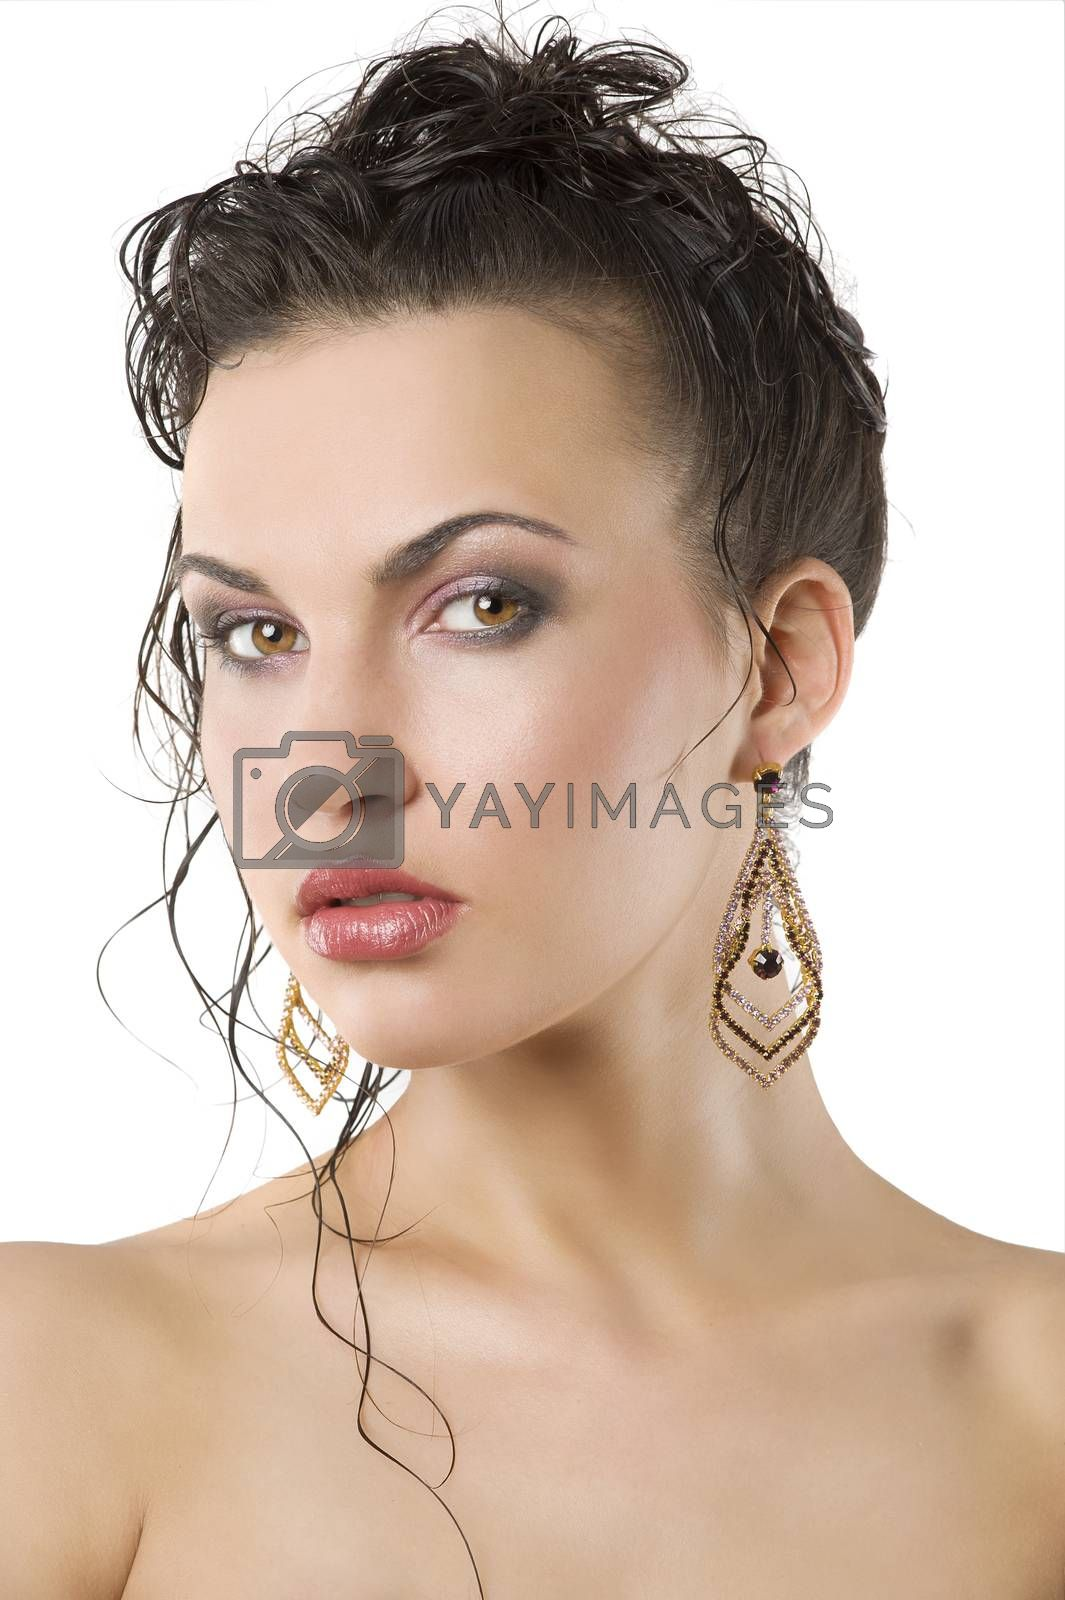 Royalty free image of the beauty portrait by fotoCD